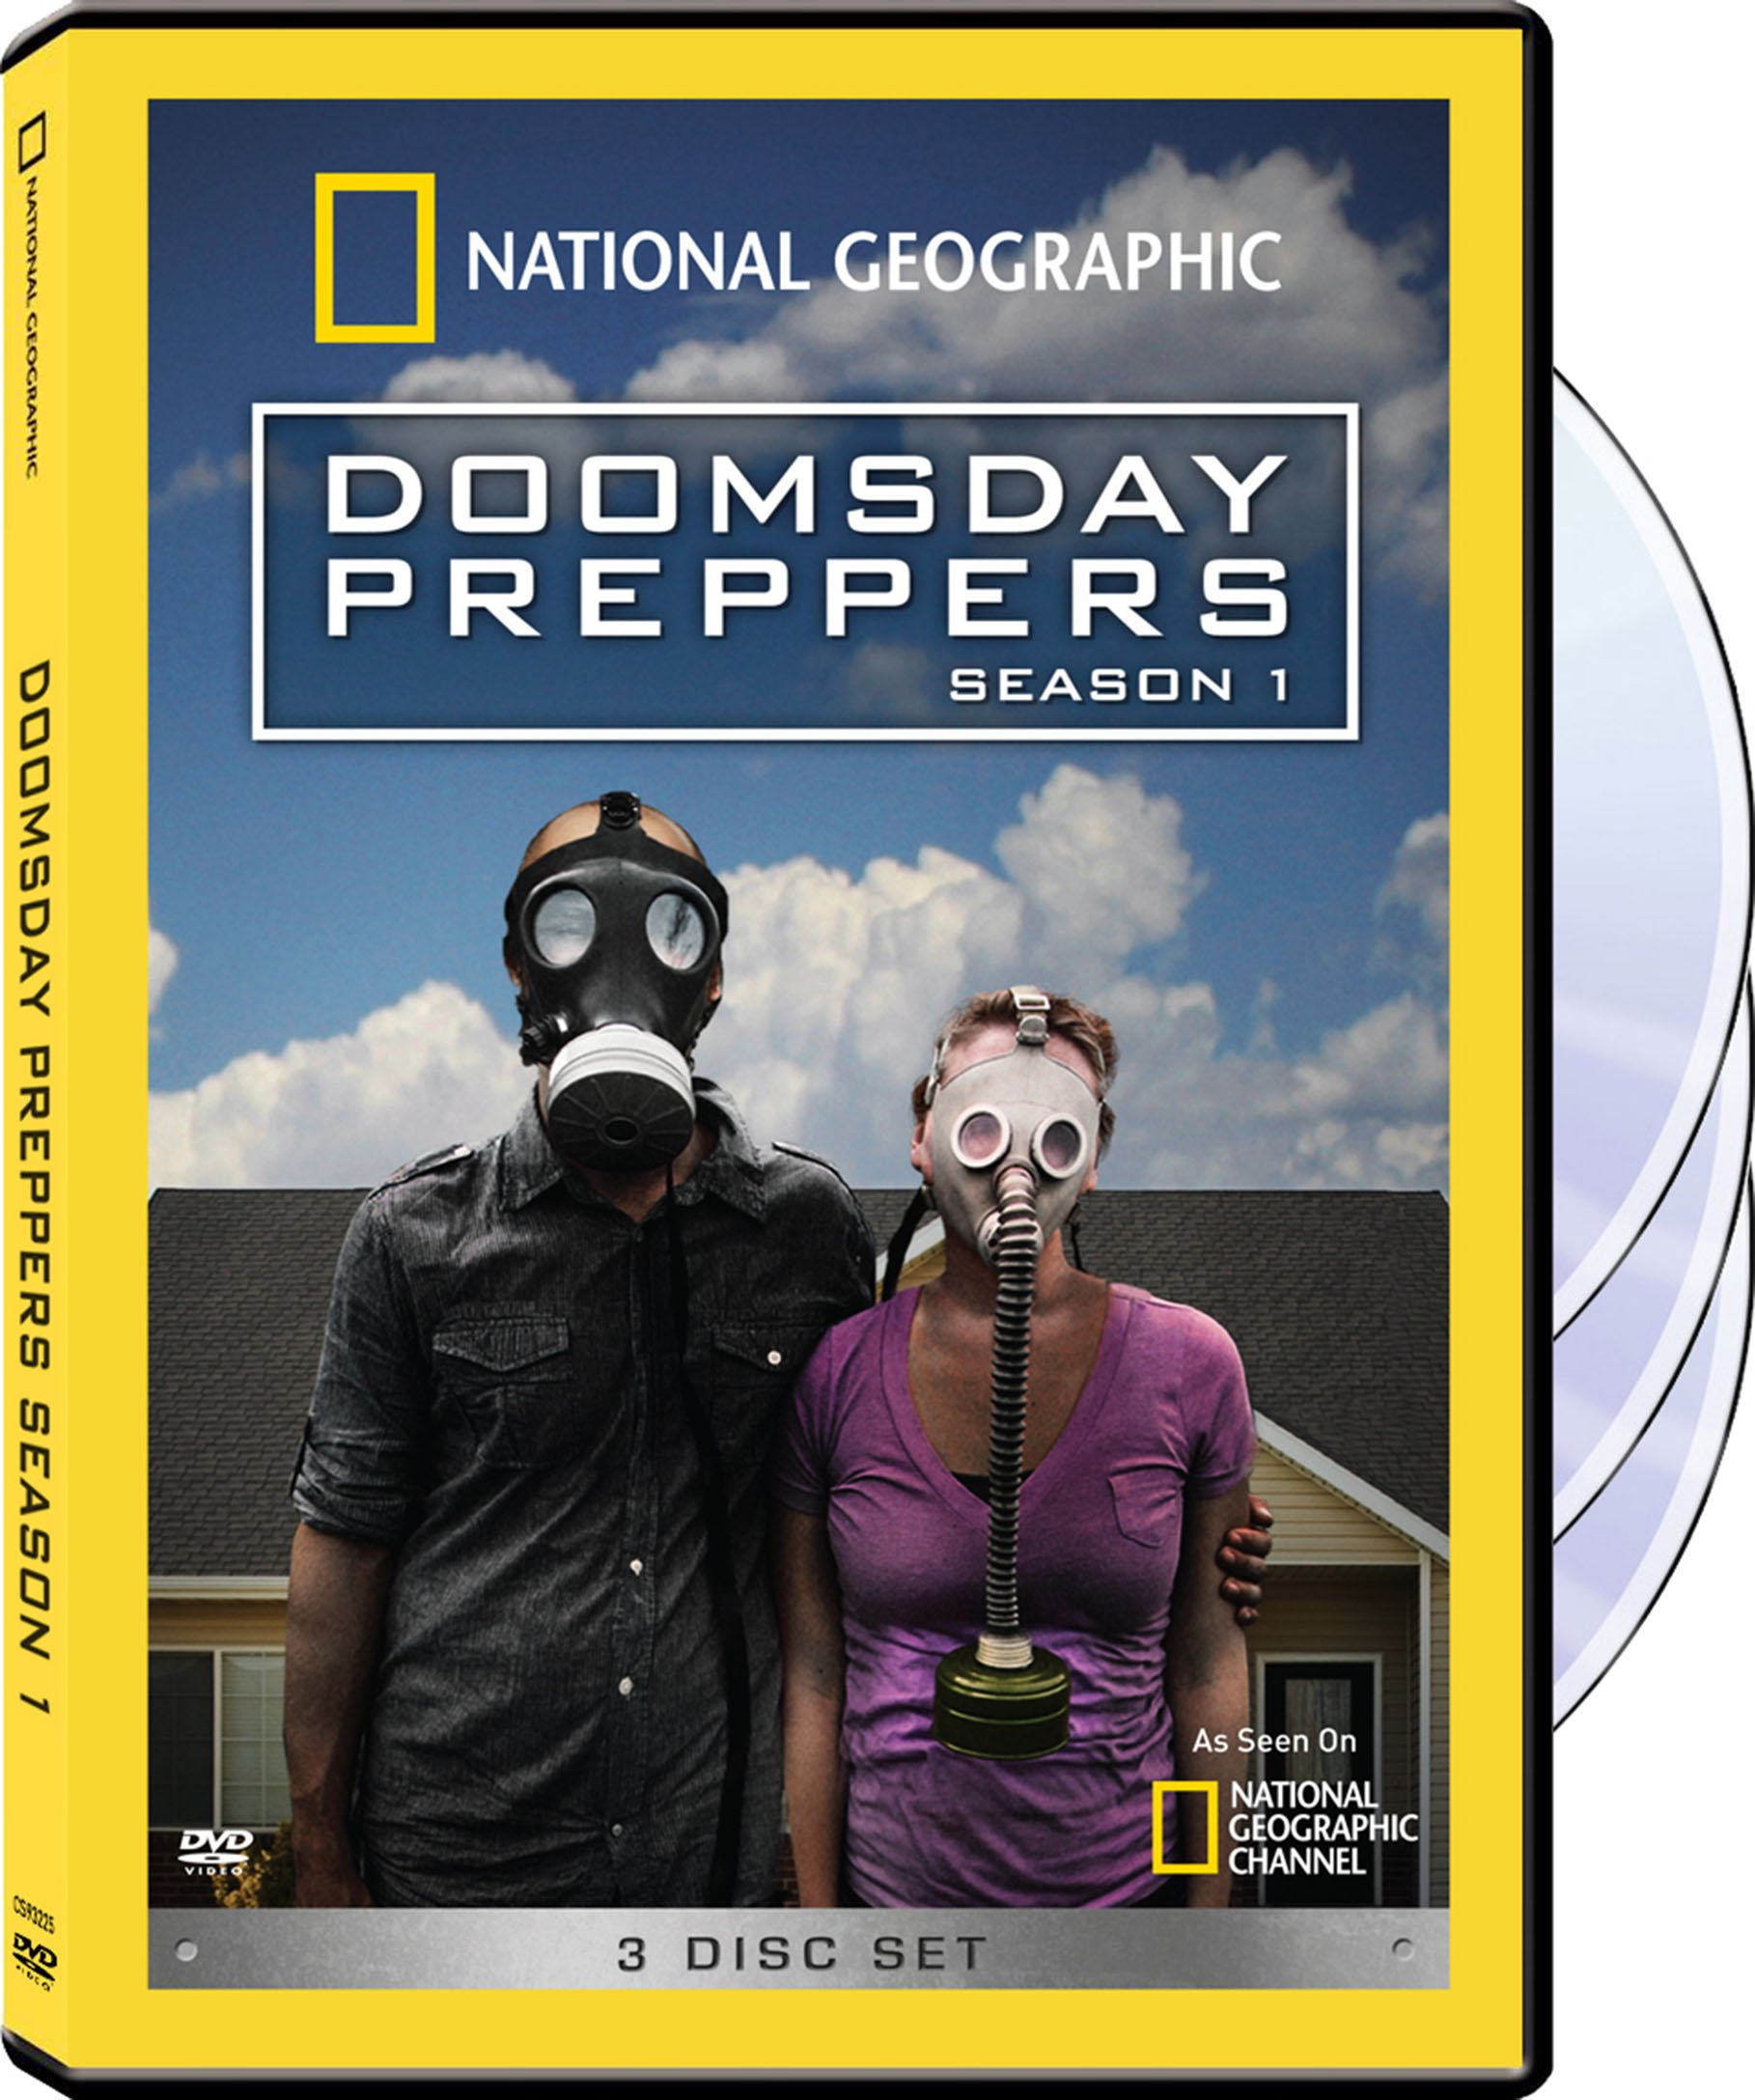 Doomsday Preppers Season 1